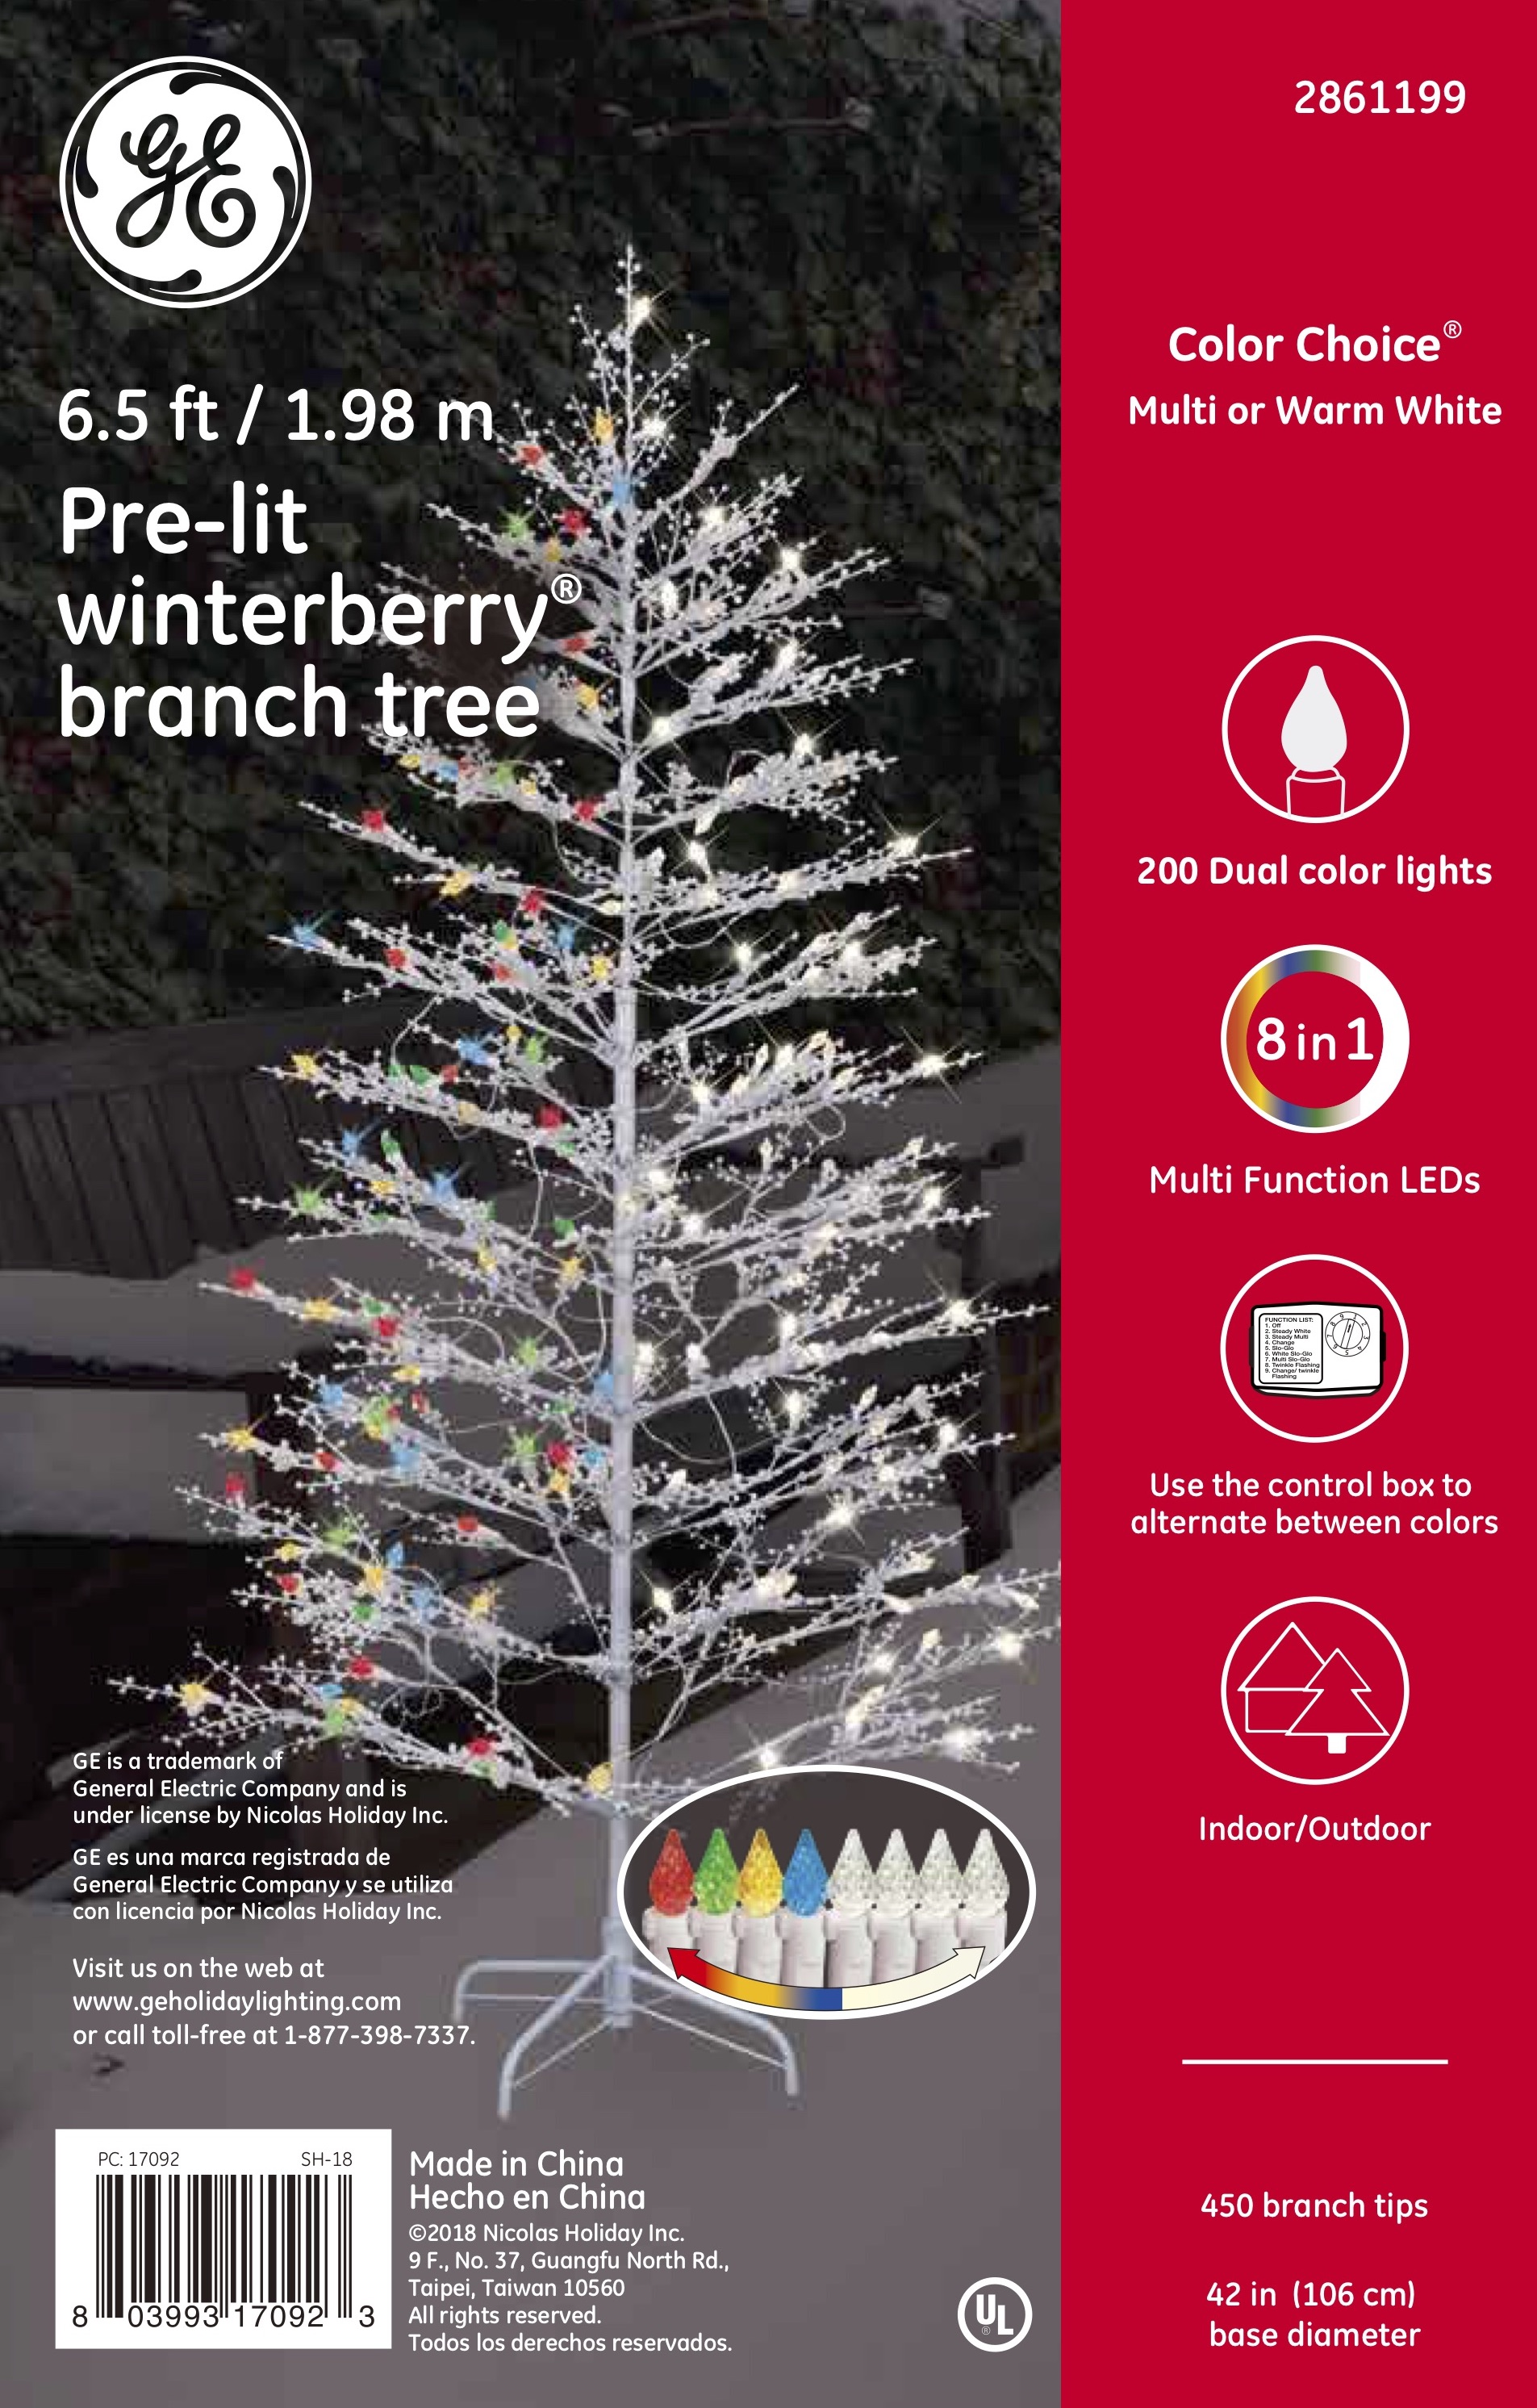 Ge Christmas Tree Lights.17092 Ge Winterberry Branch Tree 6 5 Ft Color Choice